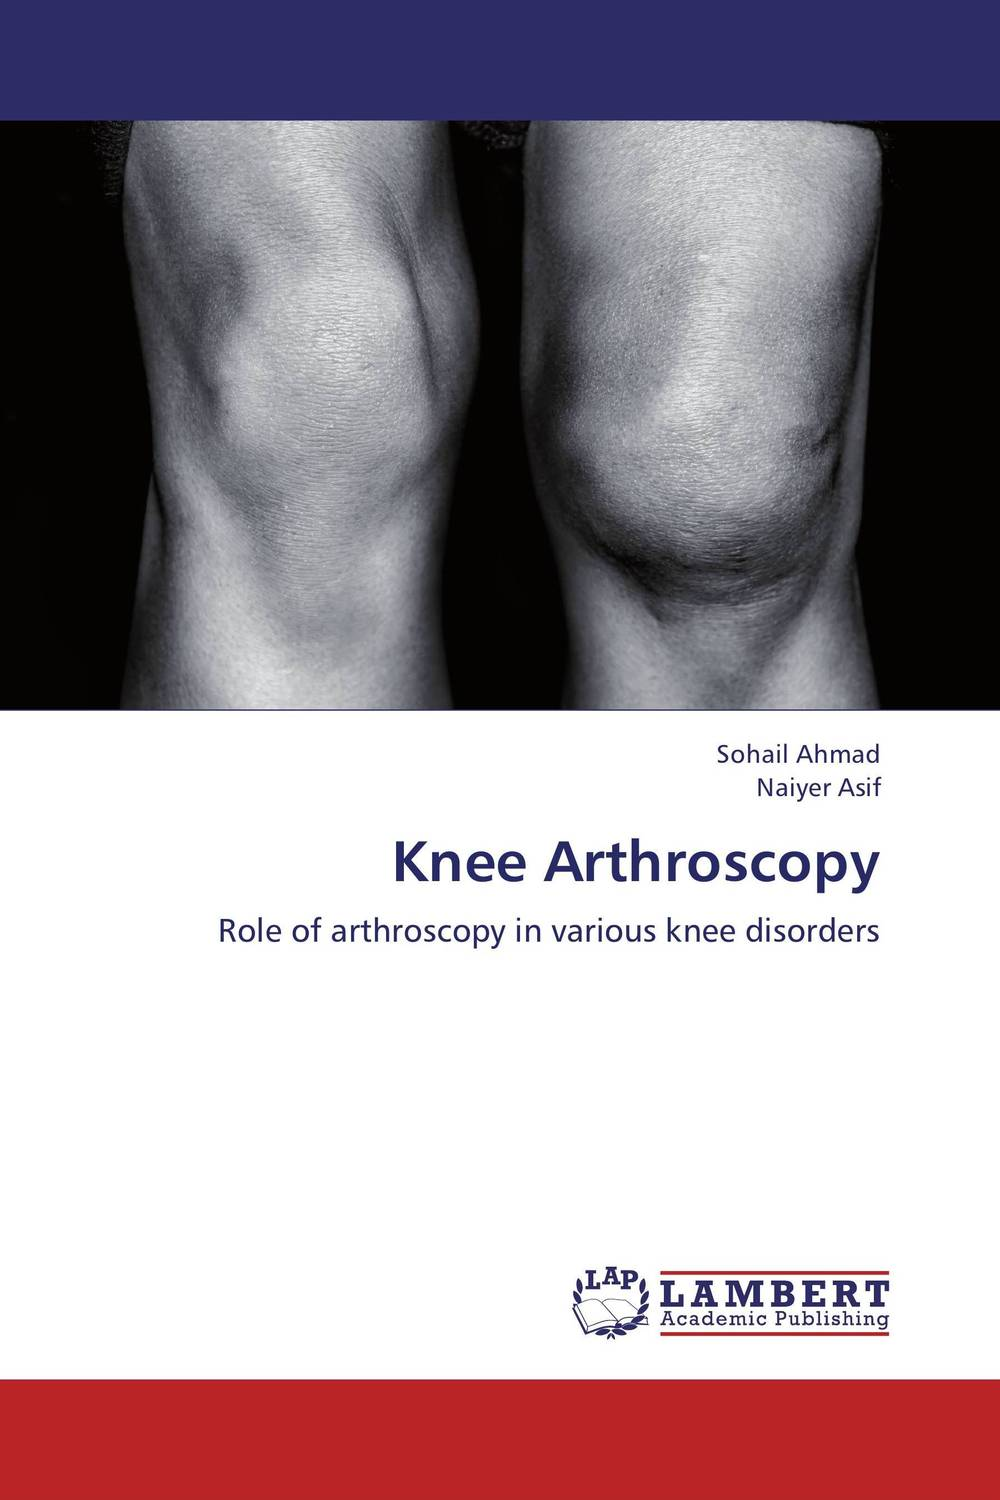 Knee Arthroscopy keen pain massager for the pain in knee joint and osteoarthritis knee treatment